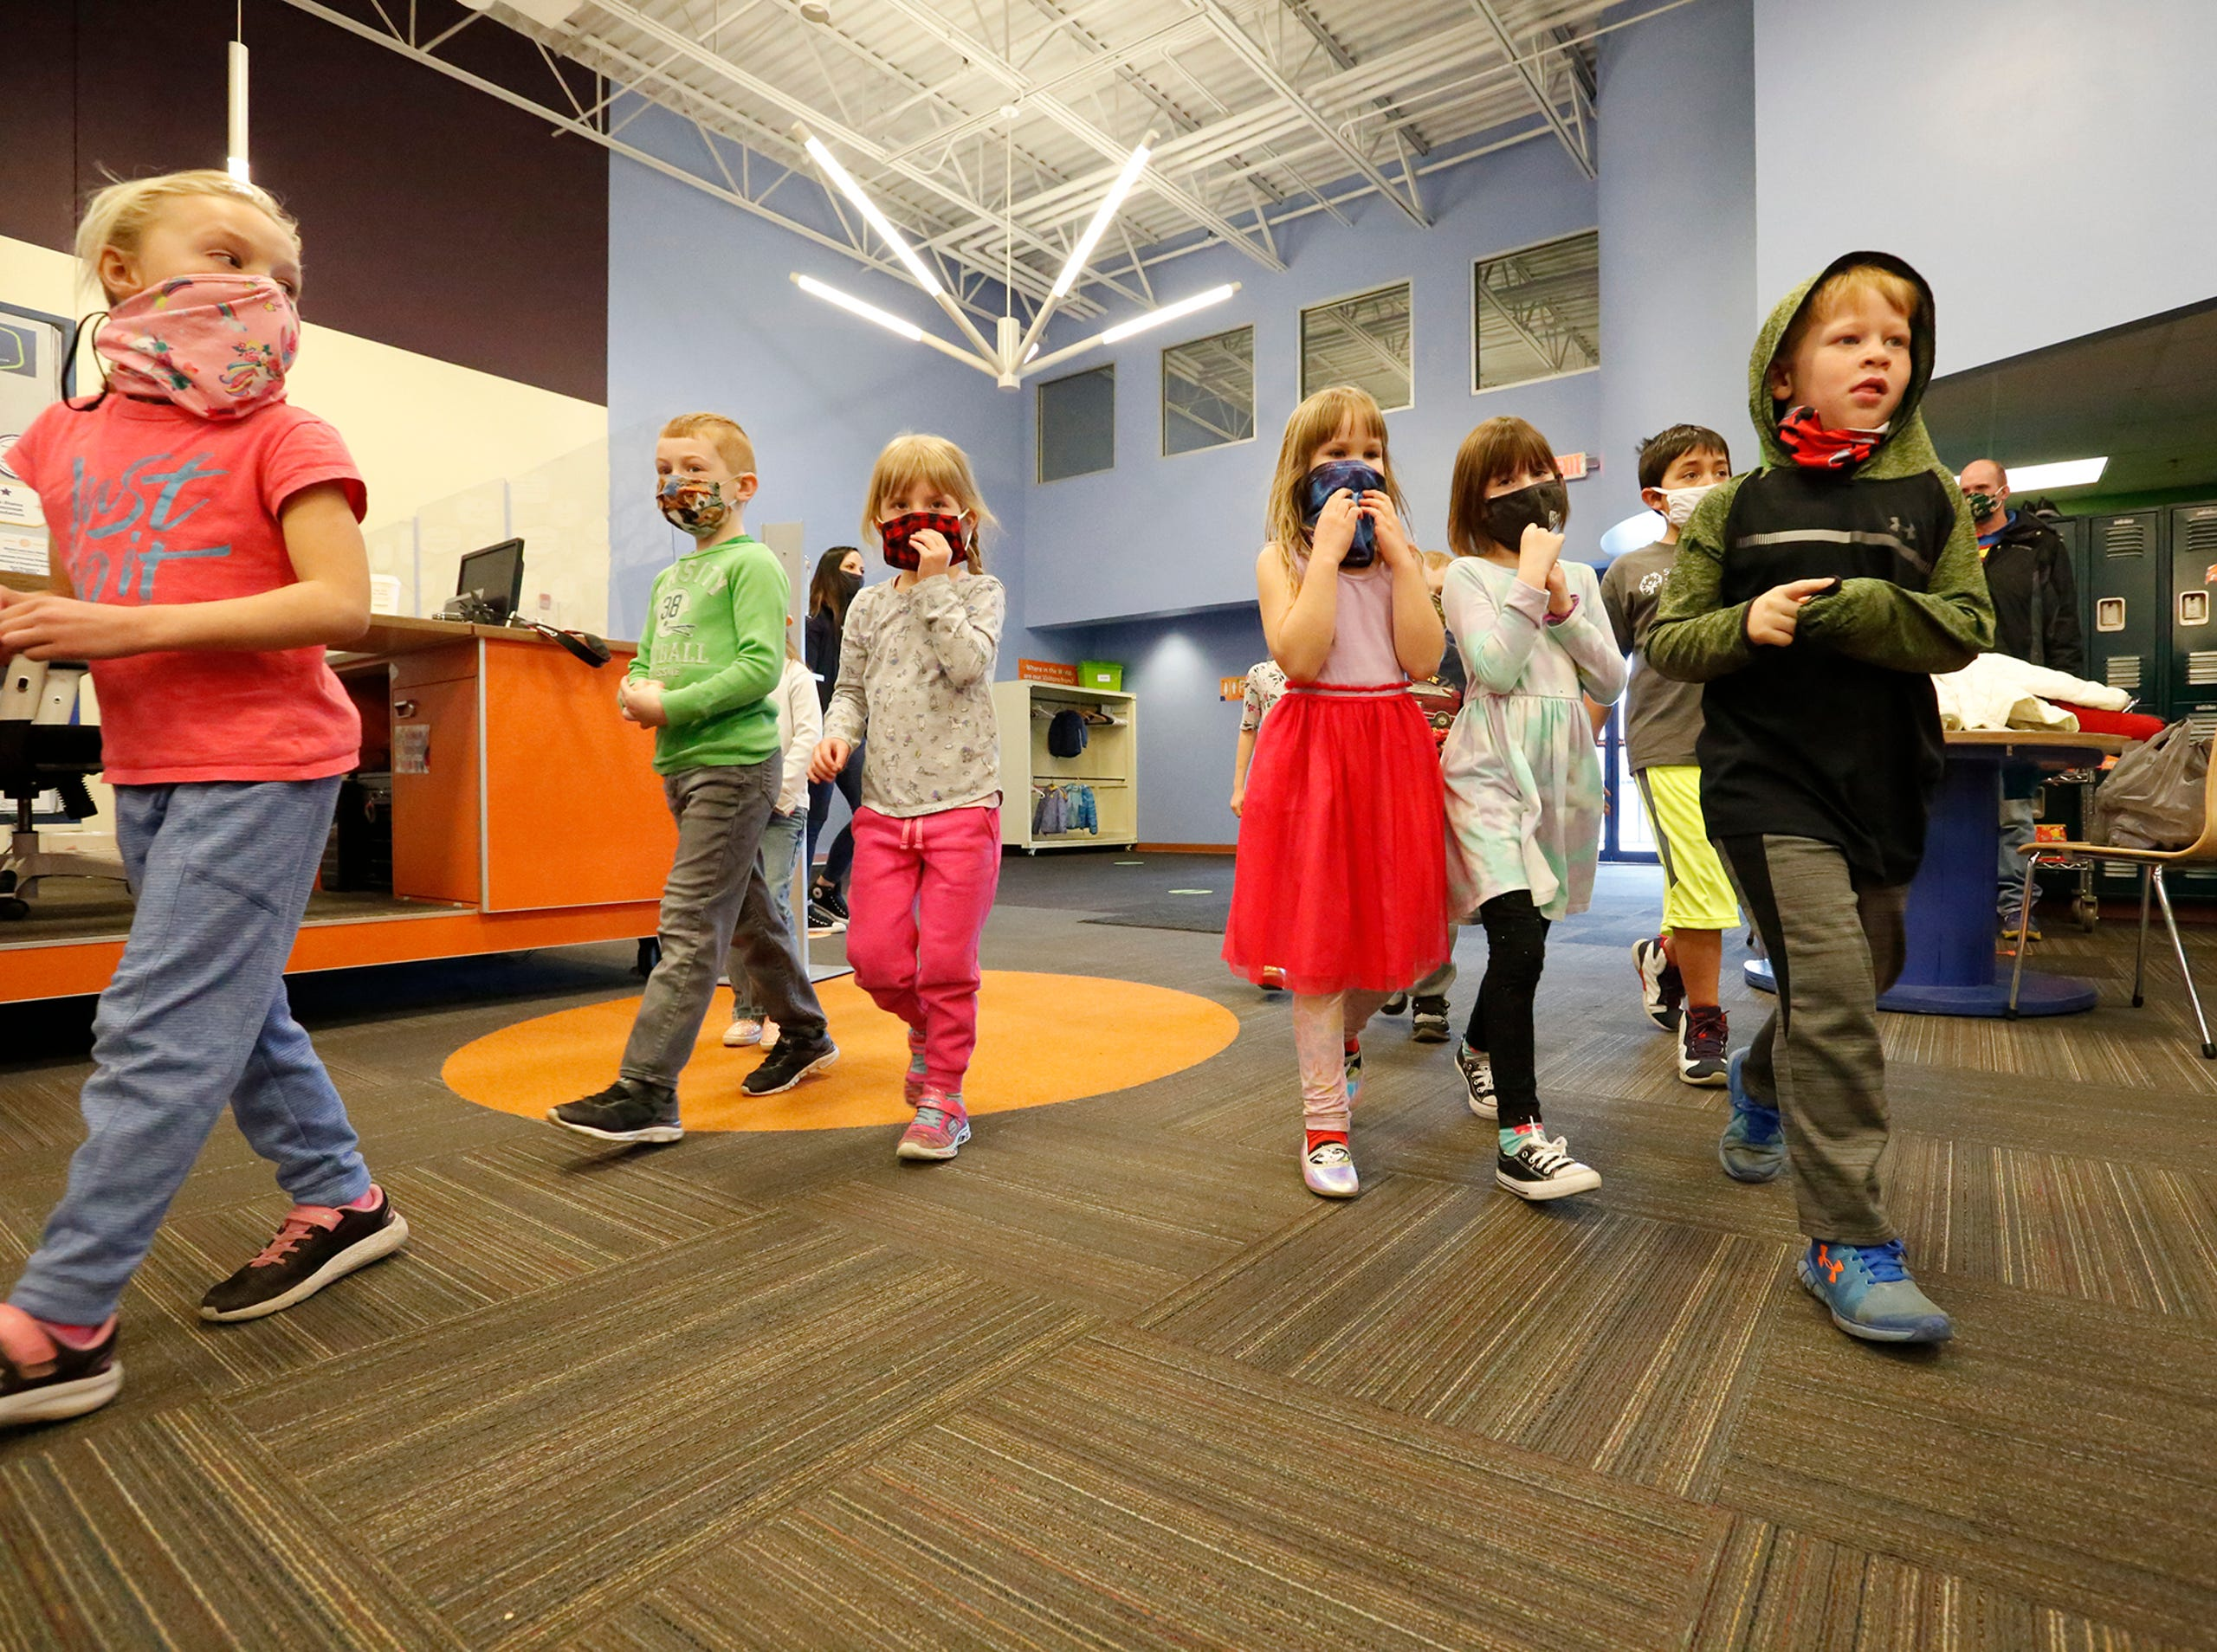 Kids enter to play Saturday, March 13, 2021 at the Fond du Lac Children's Museum in Fond du Lac, Wis. The museum opens today to the public after being closed because of the Covid-19 pandemic. Doug Raflik/USA TODAY NETWORK-Wisconsin